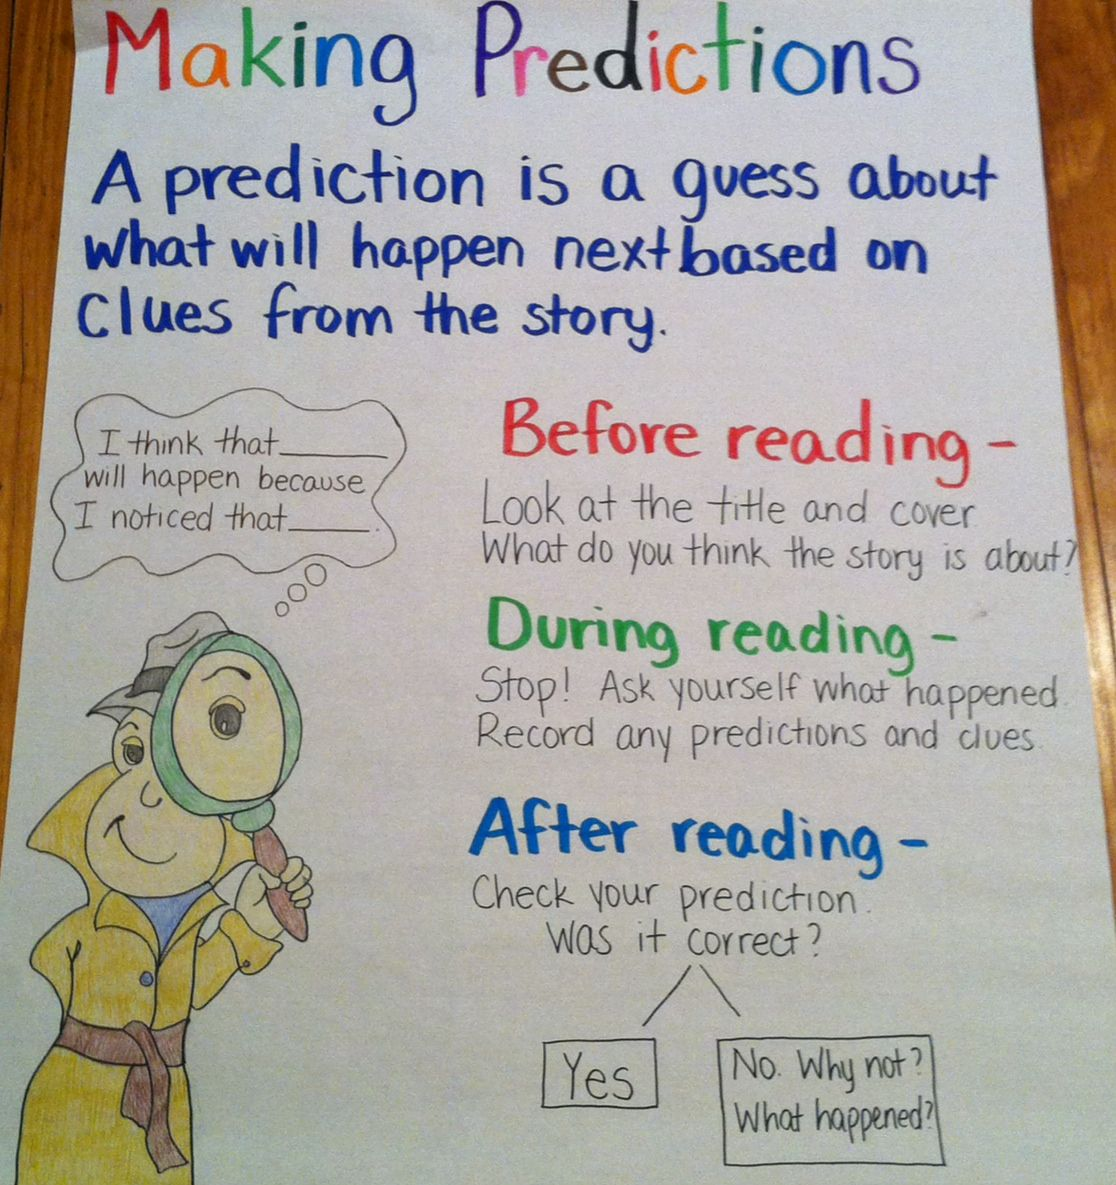 Poster design lesson plan - Making Predictions Poster